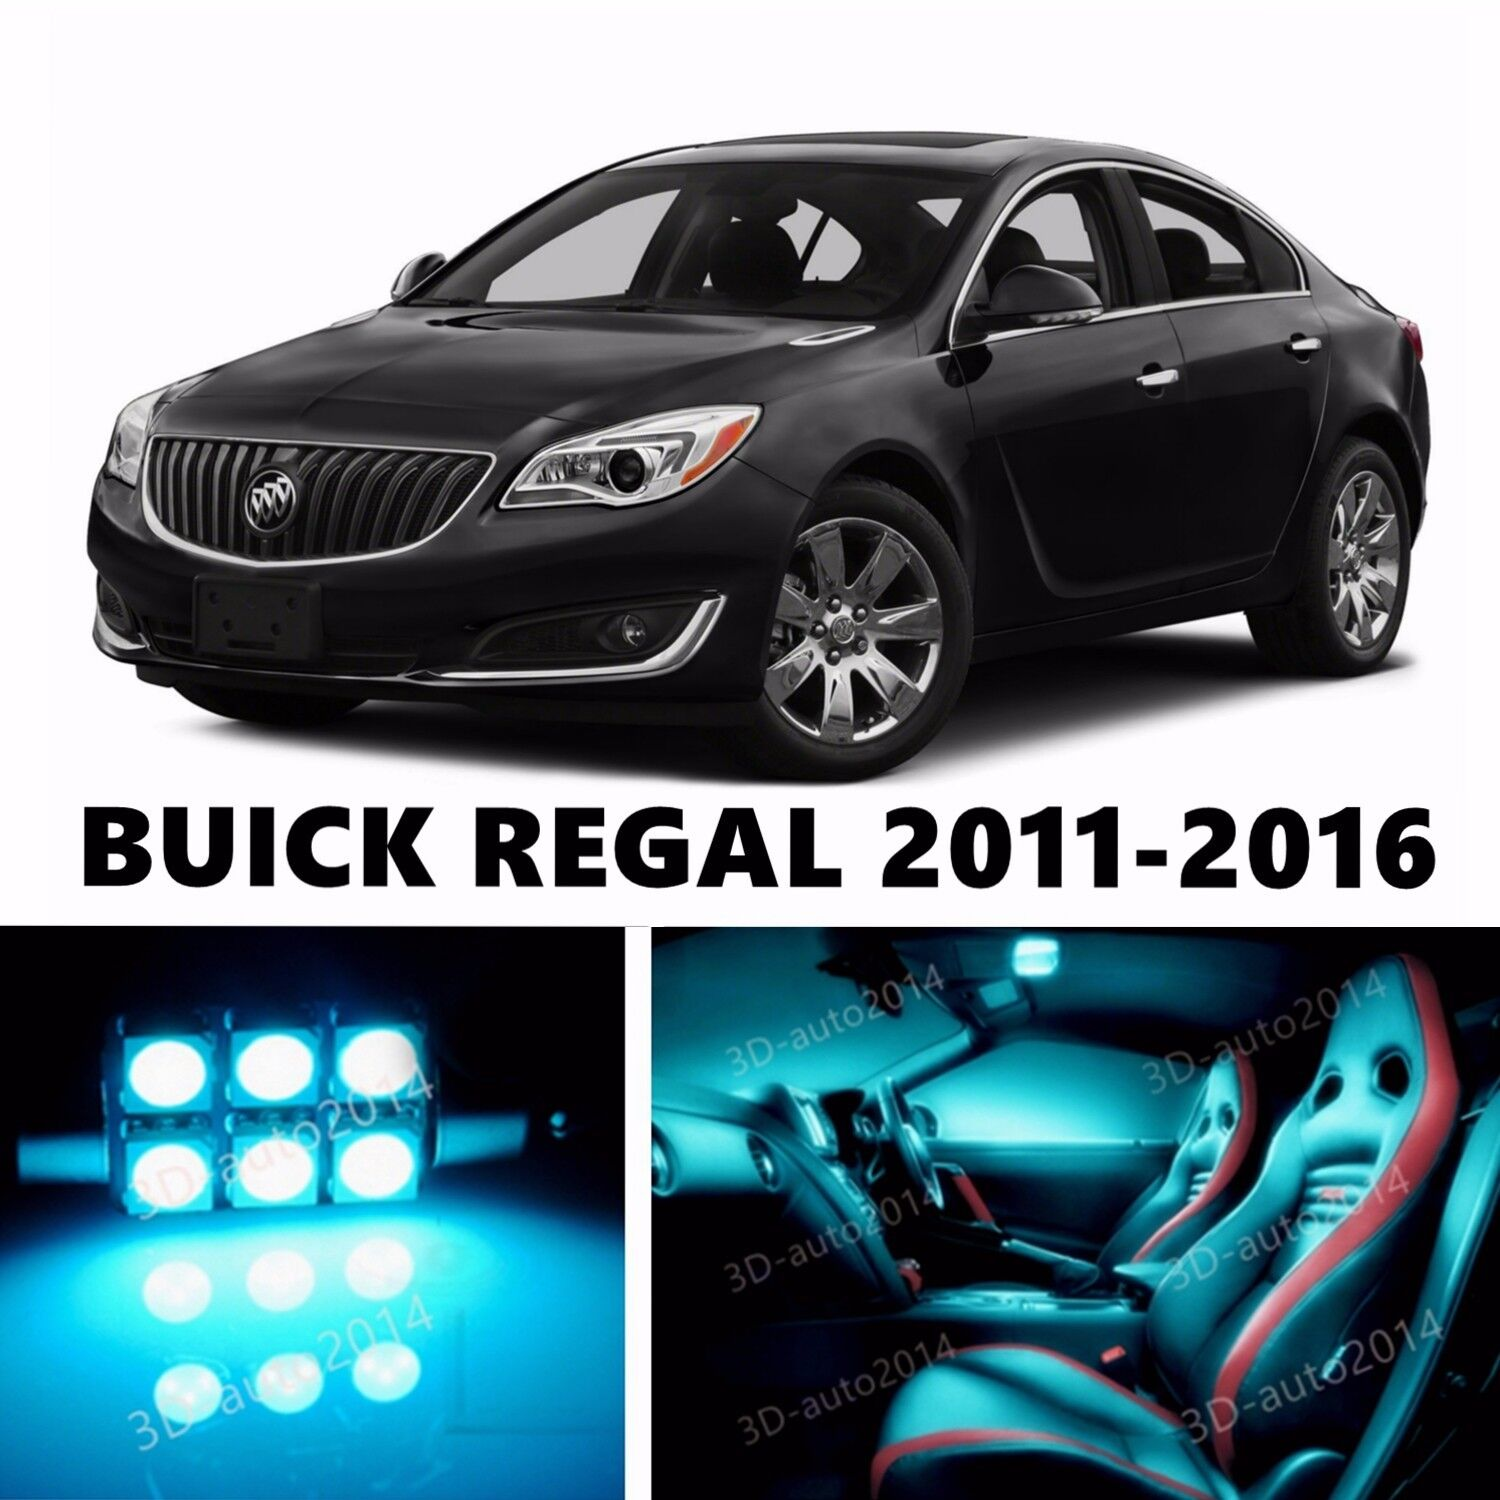 Led Regal 16pcs Led Ice Blue Light Interior Package Kit For Buick Regal